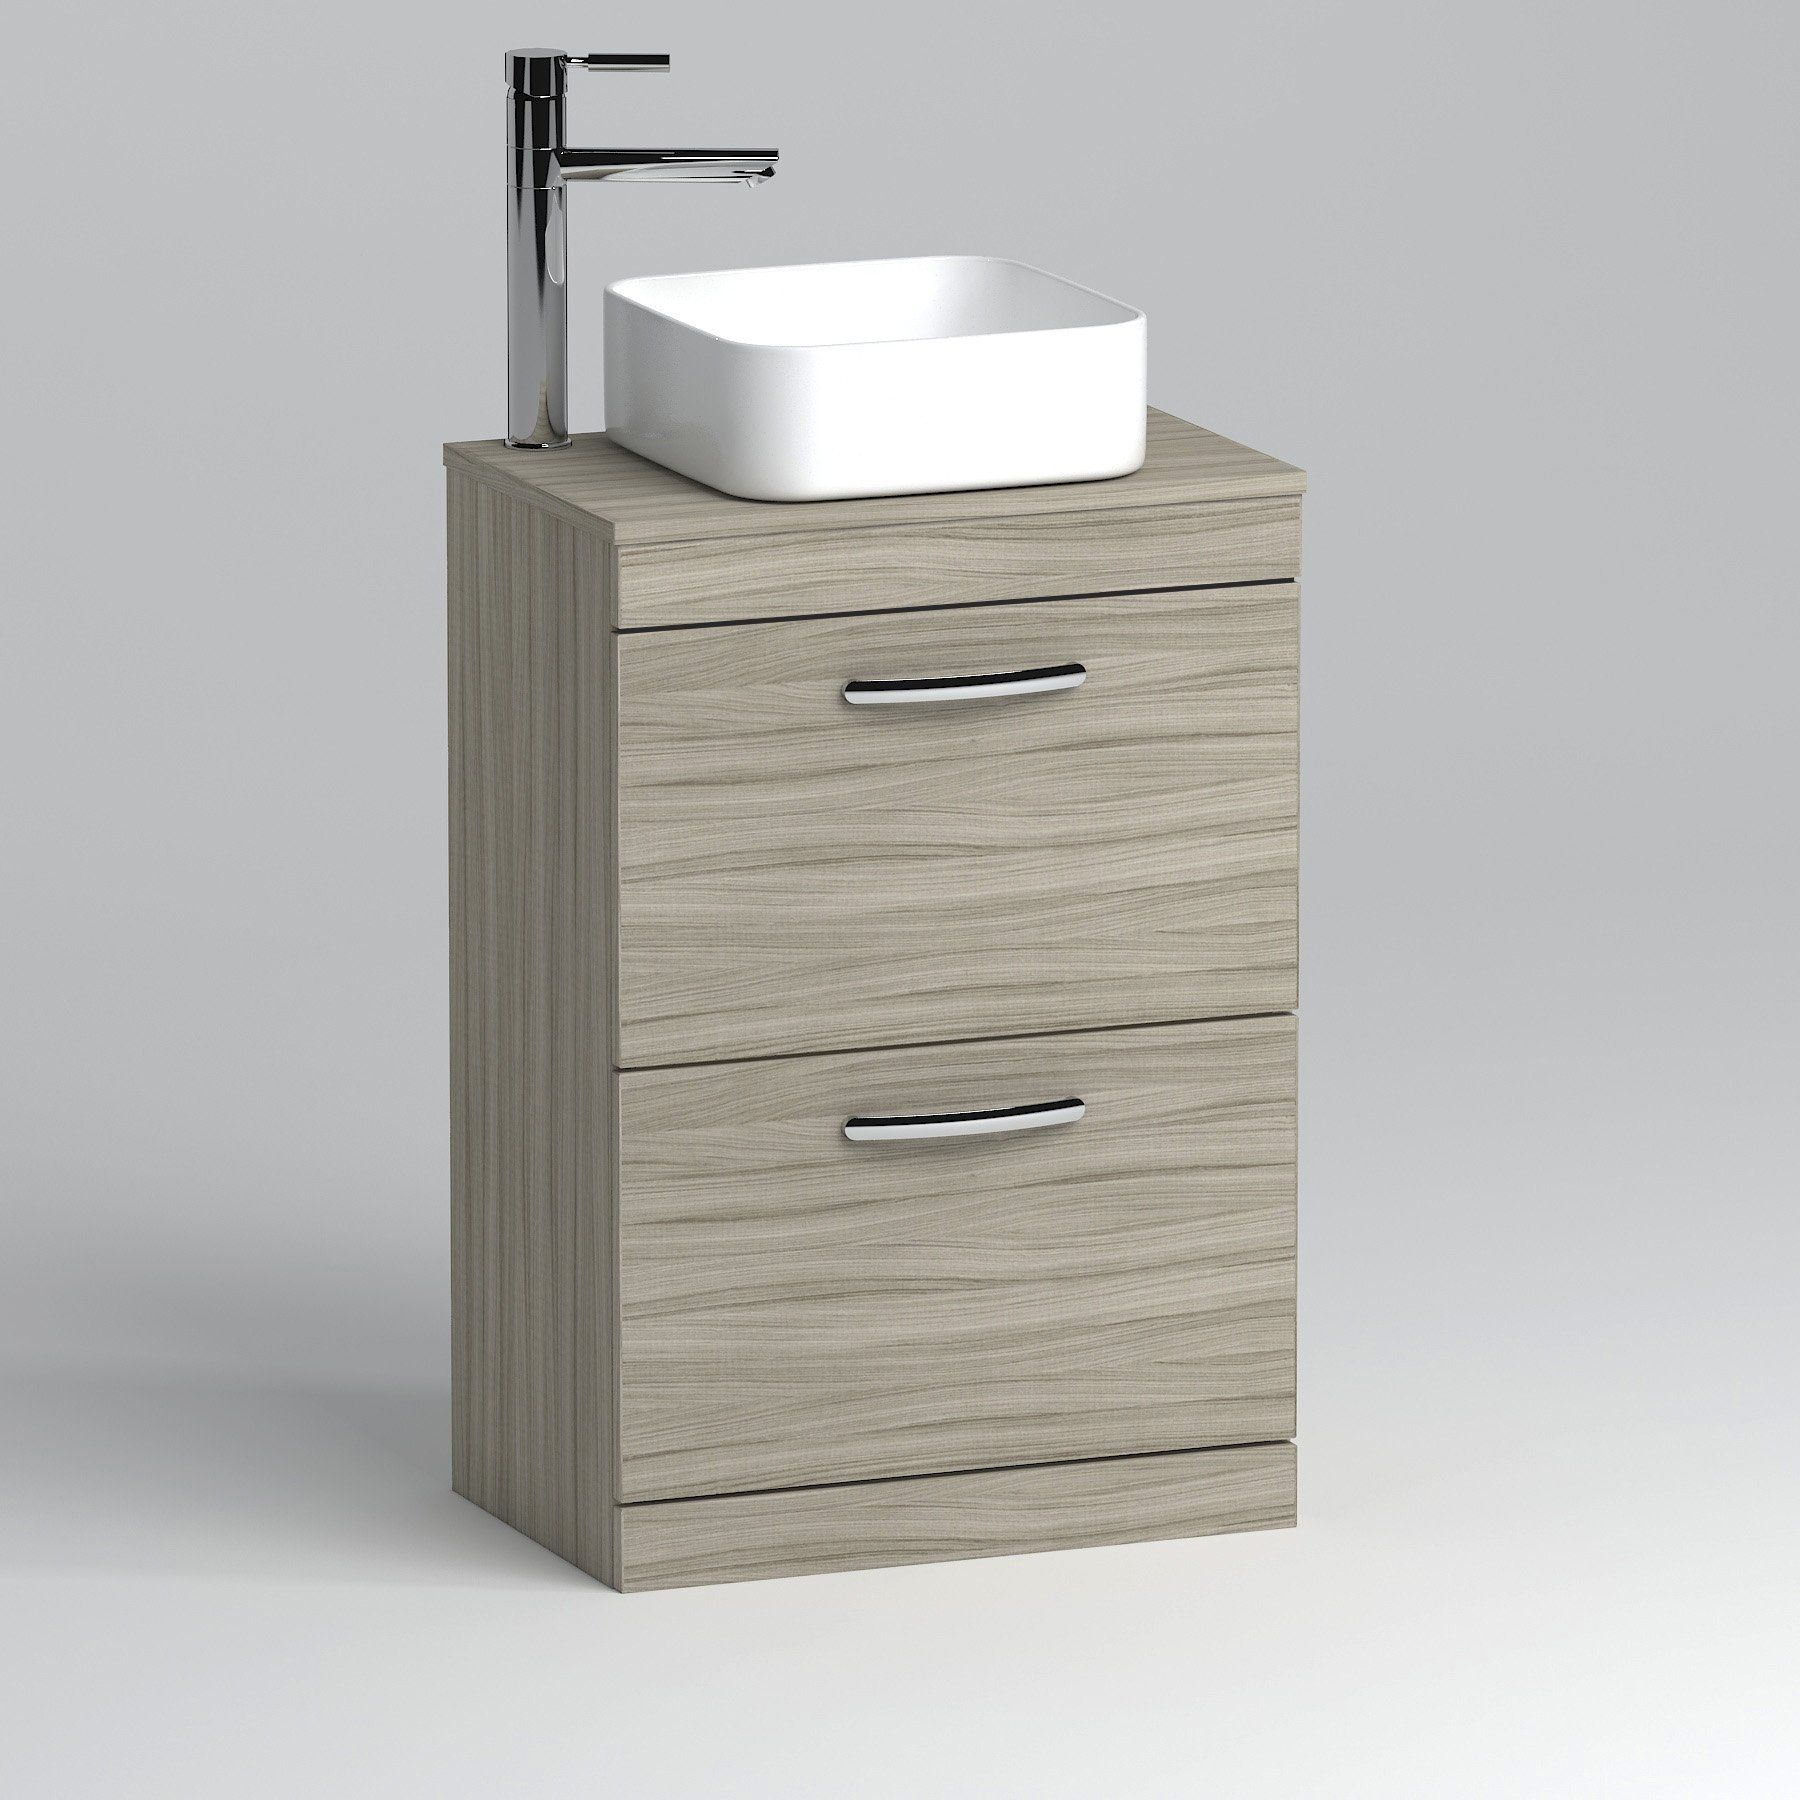 600mm Floor Standing Vanity Unit 2 Drawer Beachwood Countertop